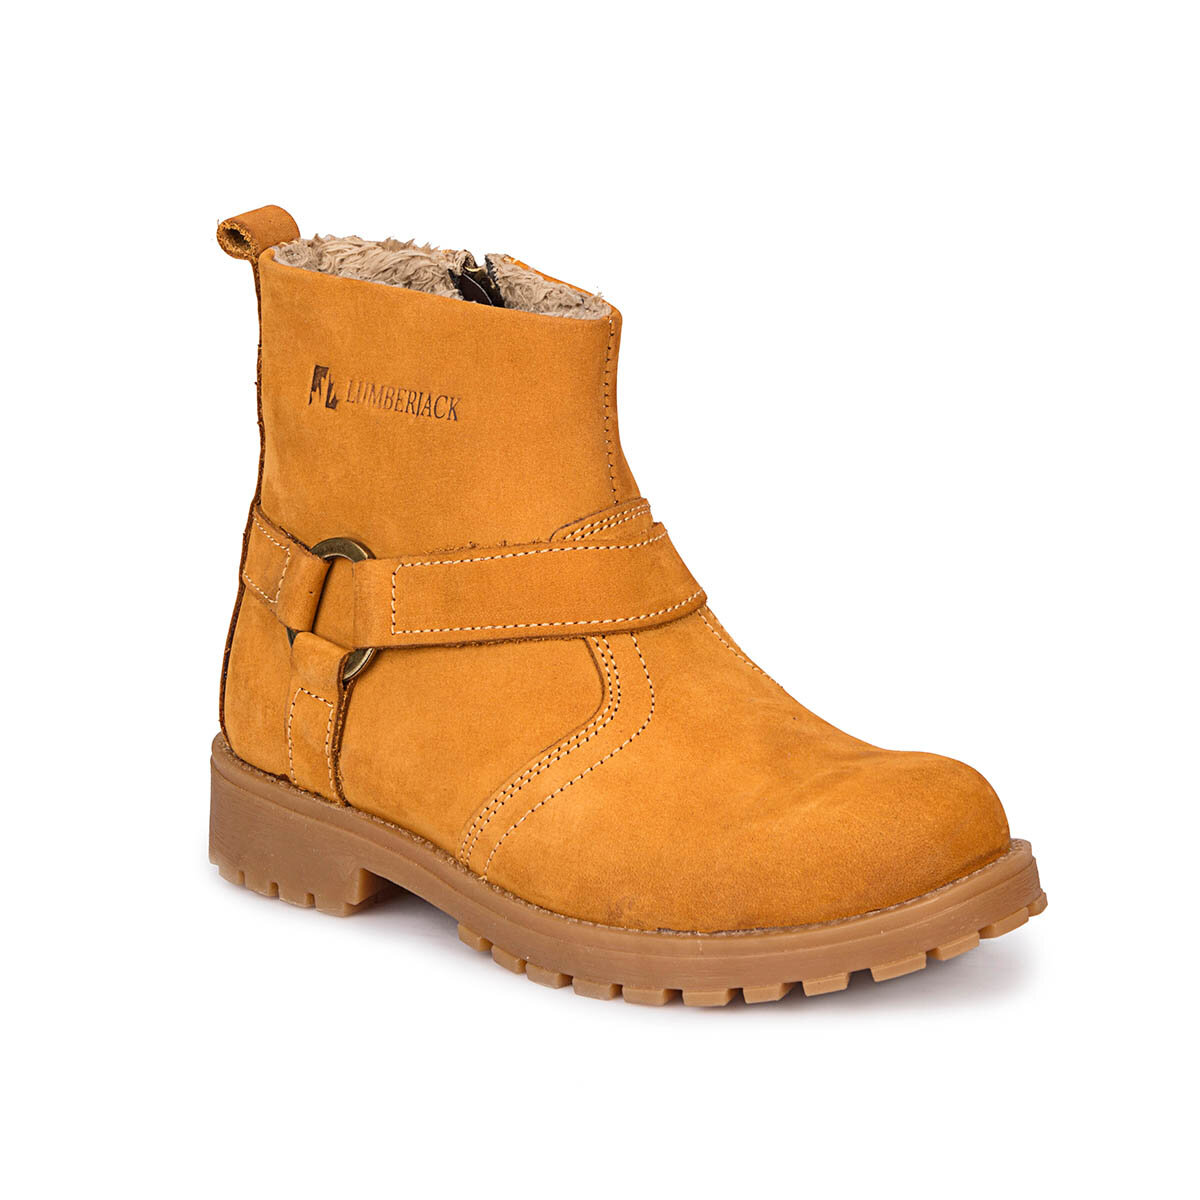 FLO LATEST Yellow Male Child Boots LUMBERJACK